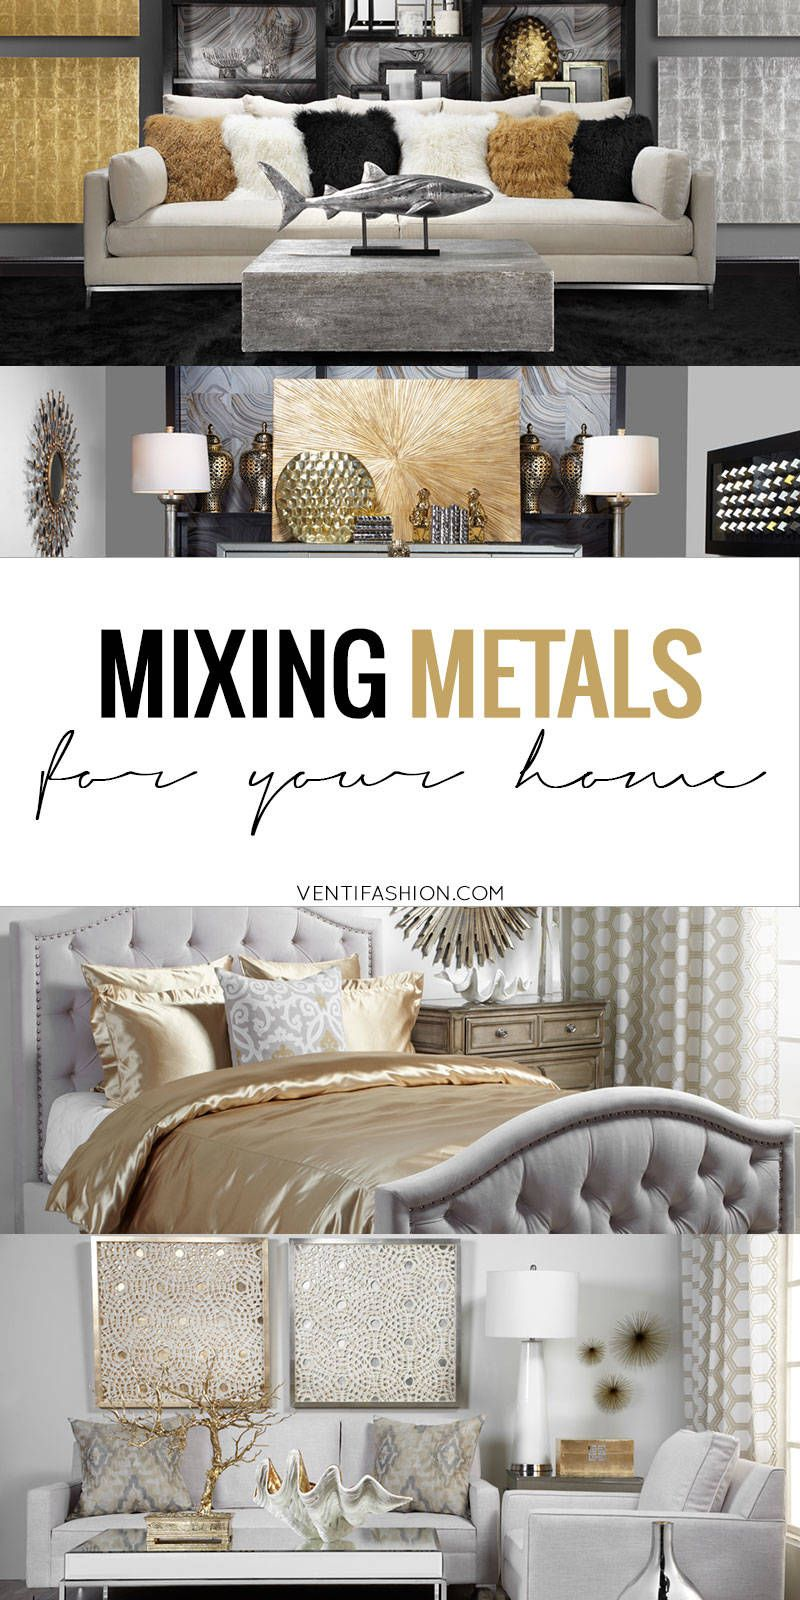 Home Decor Mixed Metals Gold Home Decor Home Decor